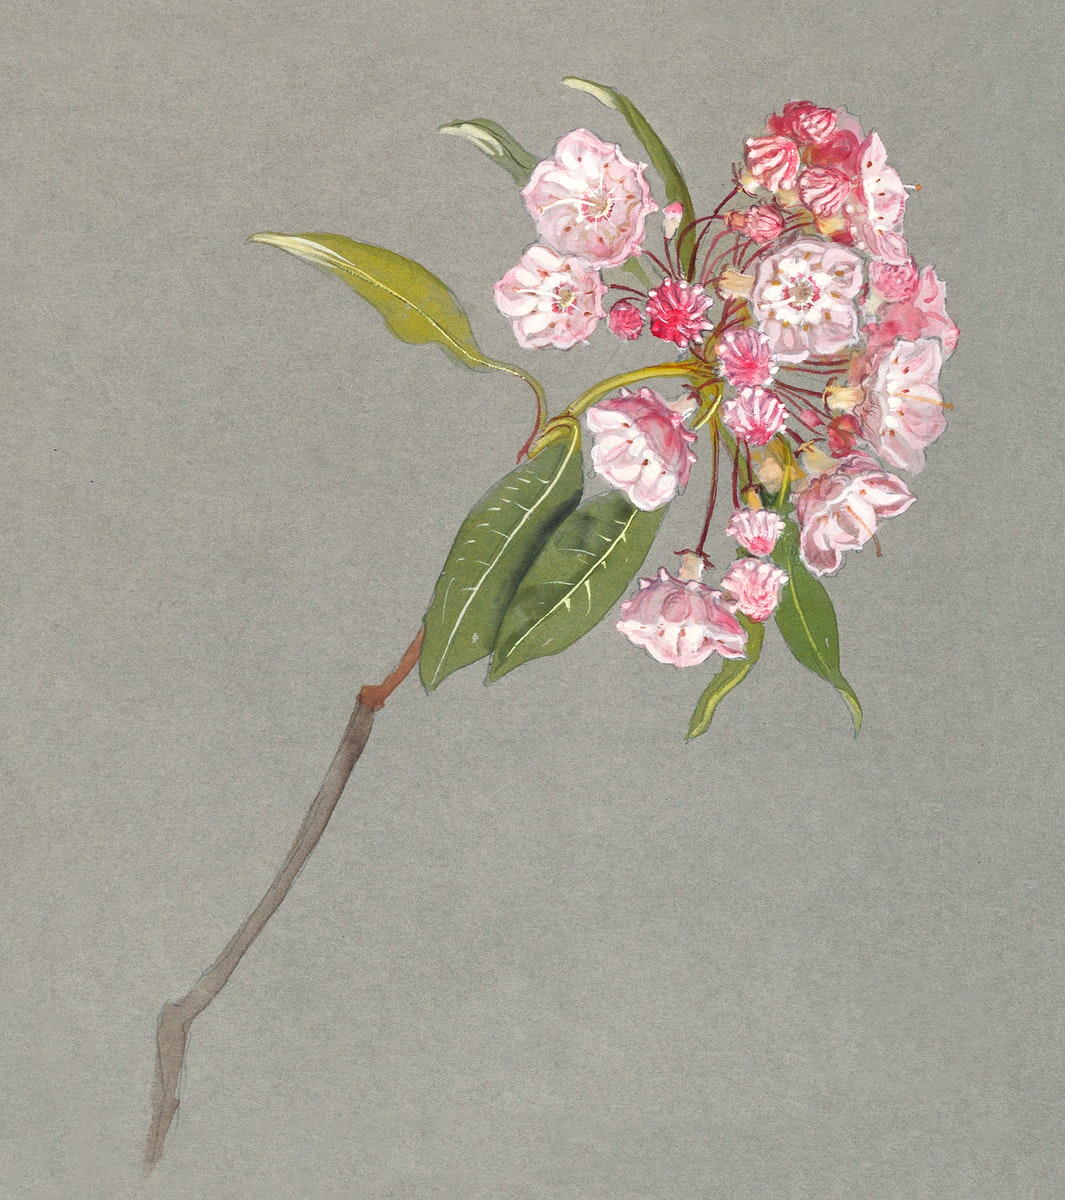 A Bough of Mountain Laurel with Leaves and Blossoms (ca. 1880) by Samuel Colman. Original from The Smithsonian Institution.…